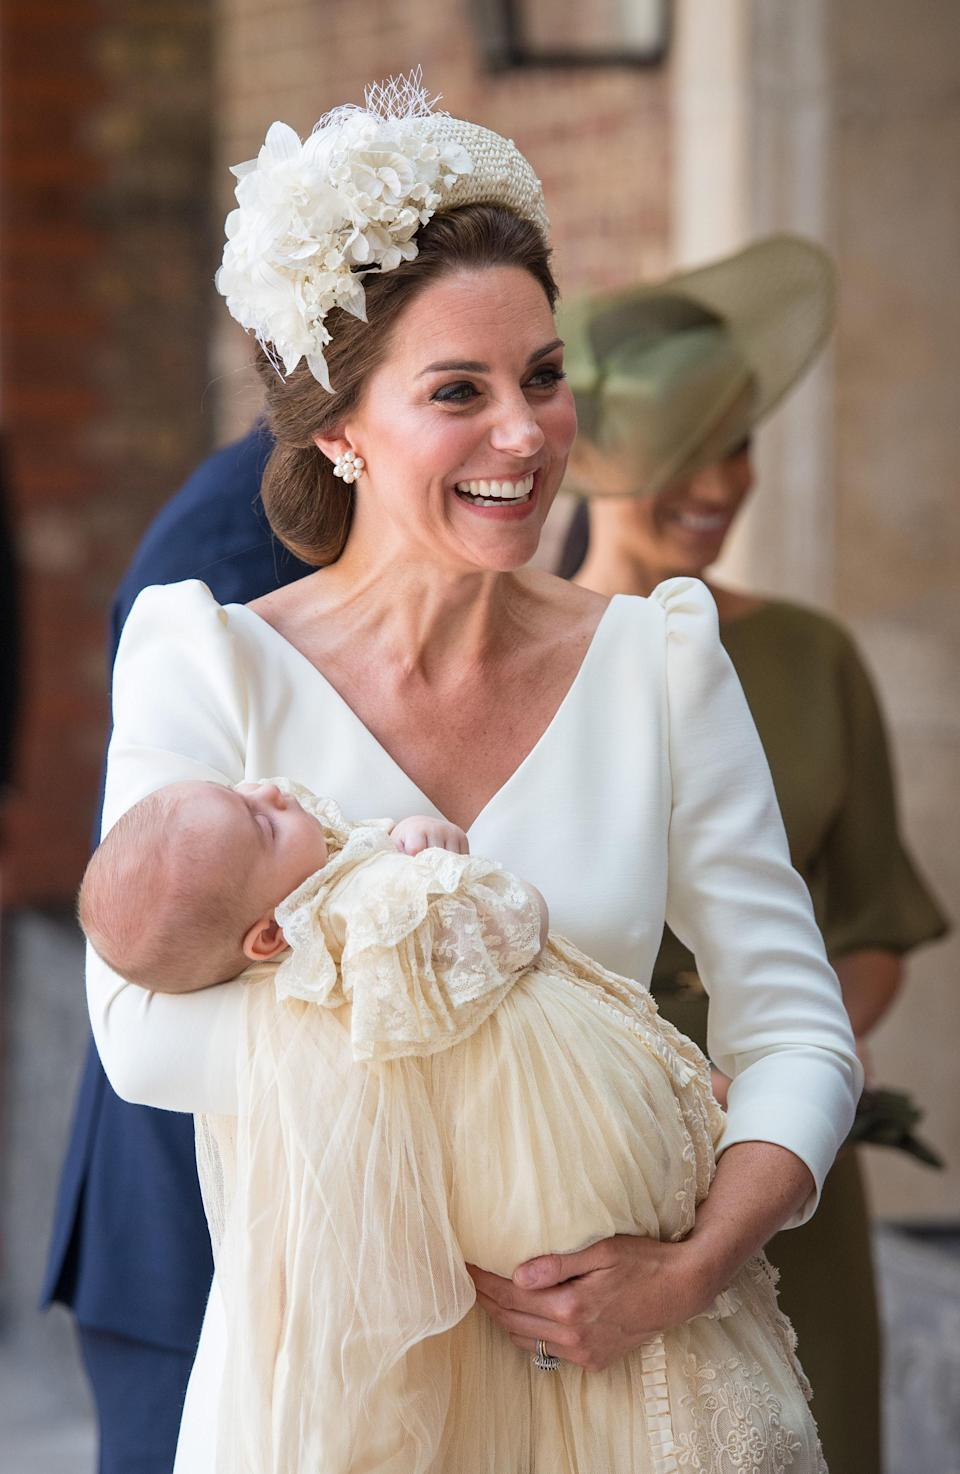 The Duchess of Cambridge was all smiles as she cradled Prince Louis [Photo: PA]